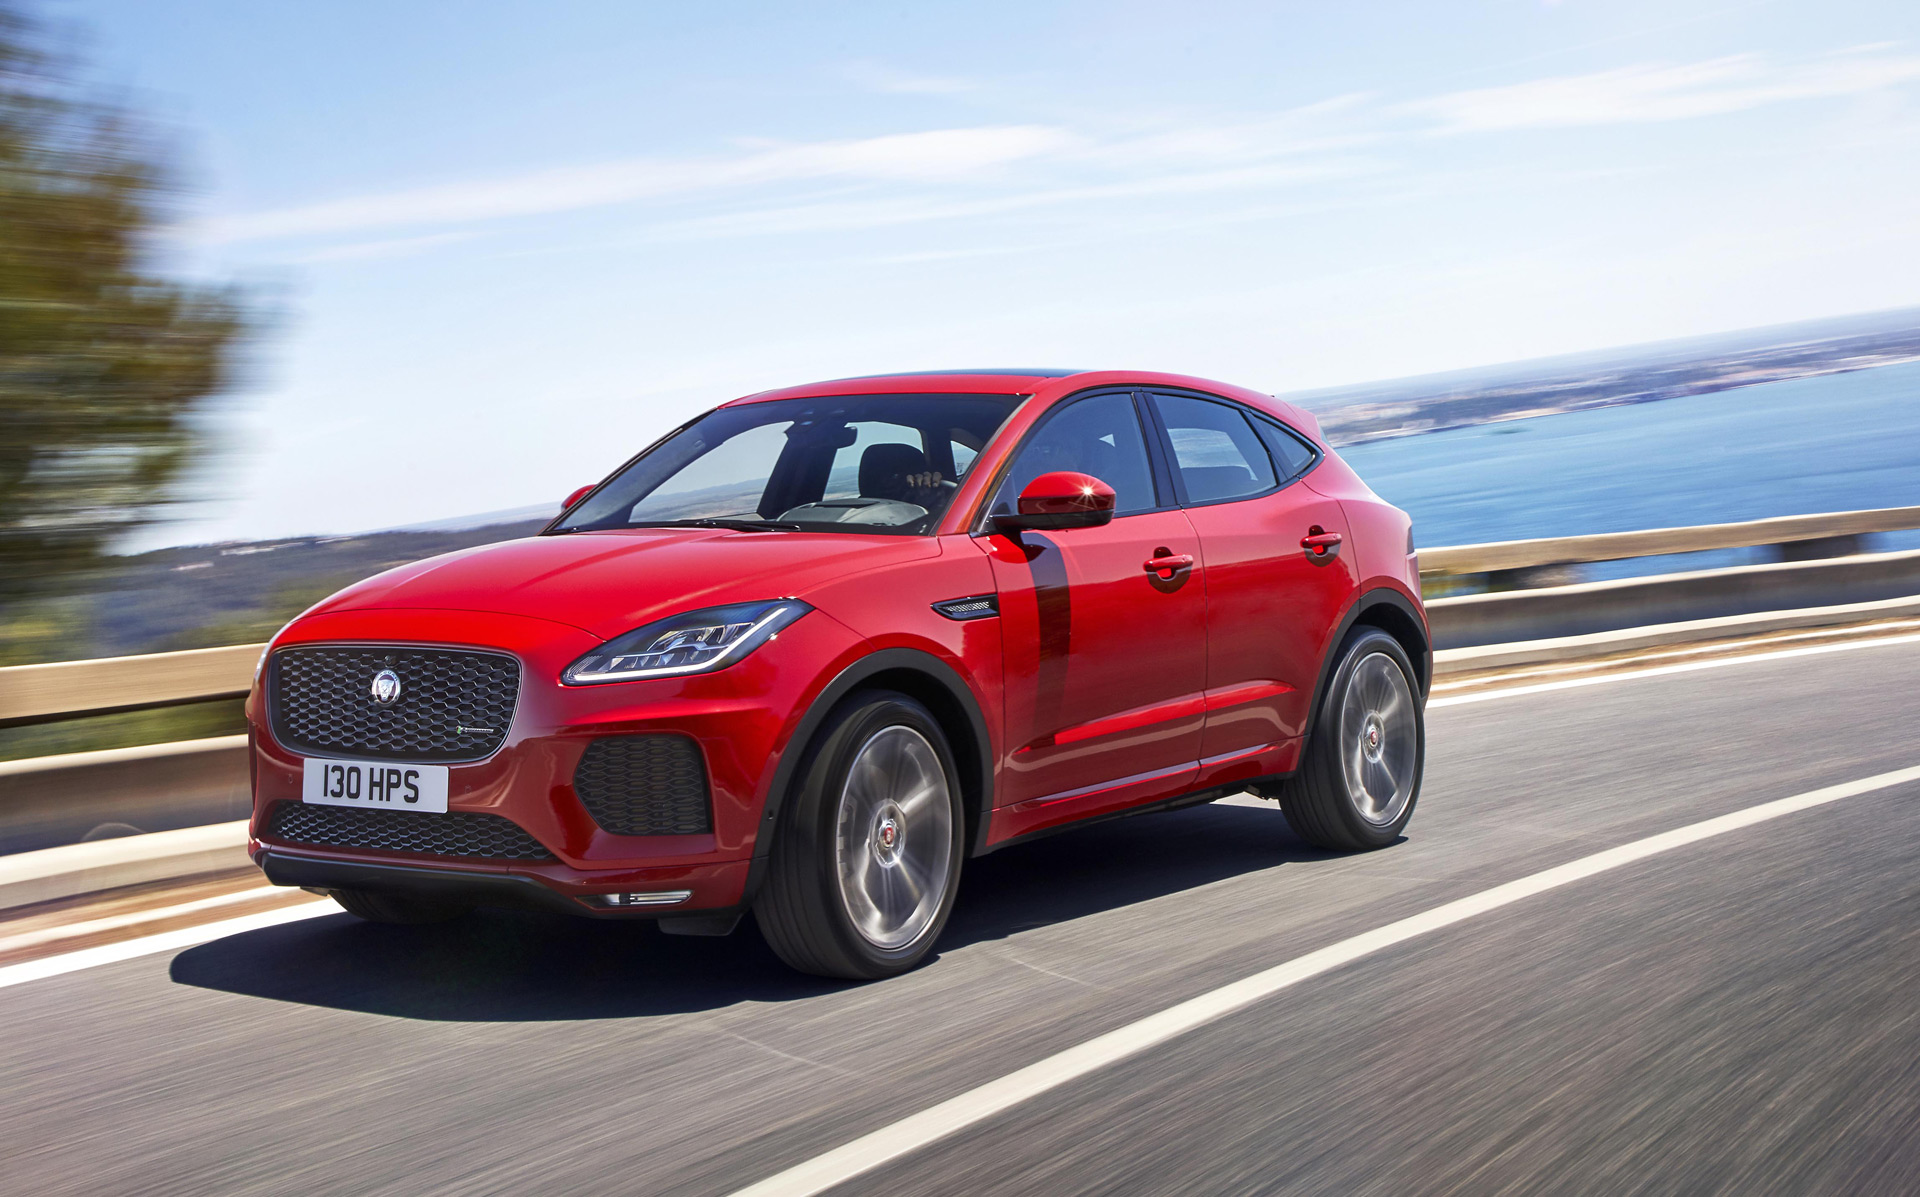 Mercedes Kansas City >> 2018 Jaguar E-Pace Review, Ratings, Specs, Prices, and Photos - The Car Connection